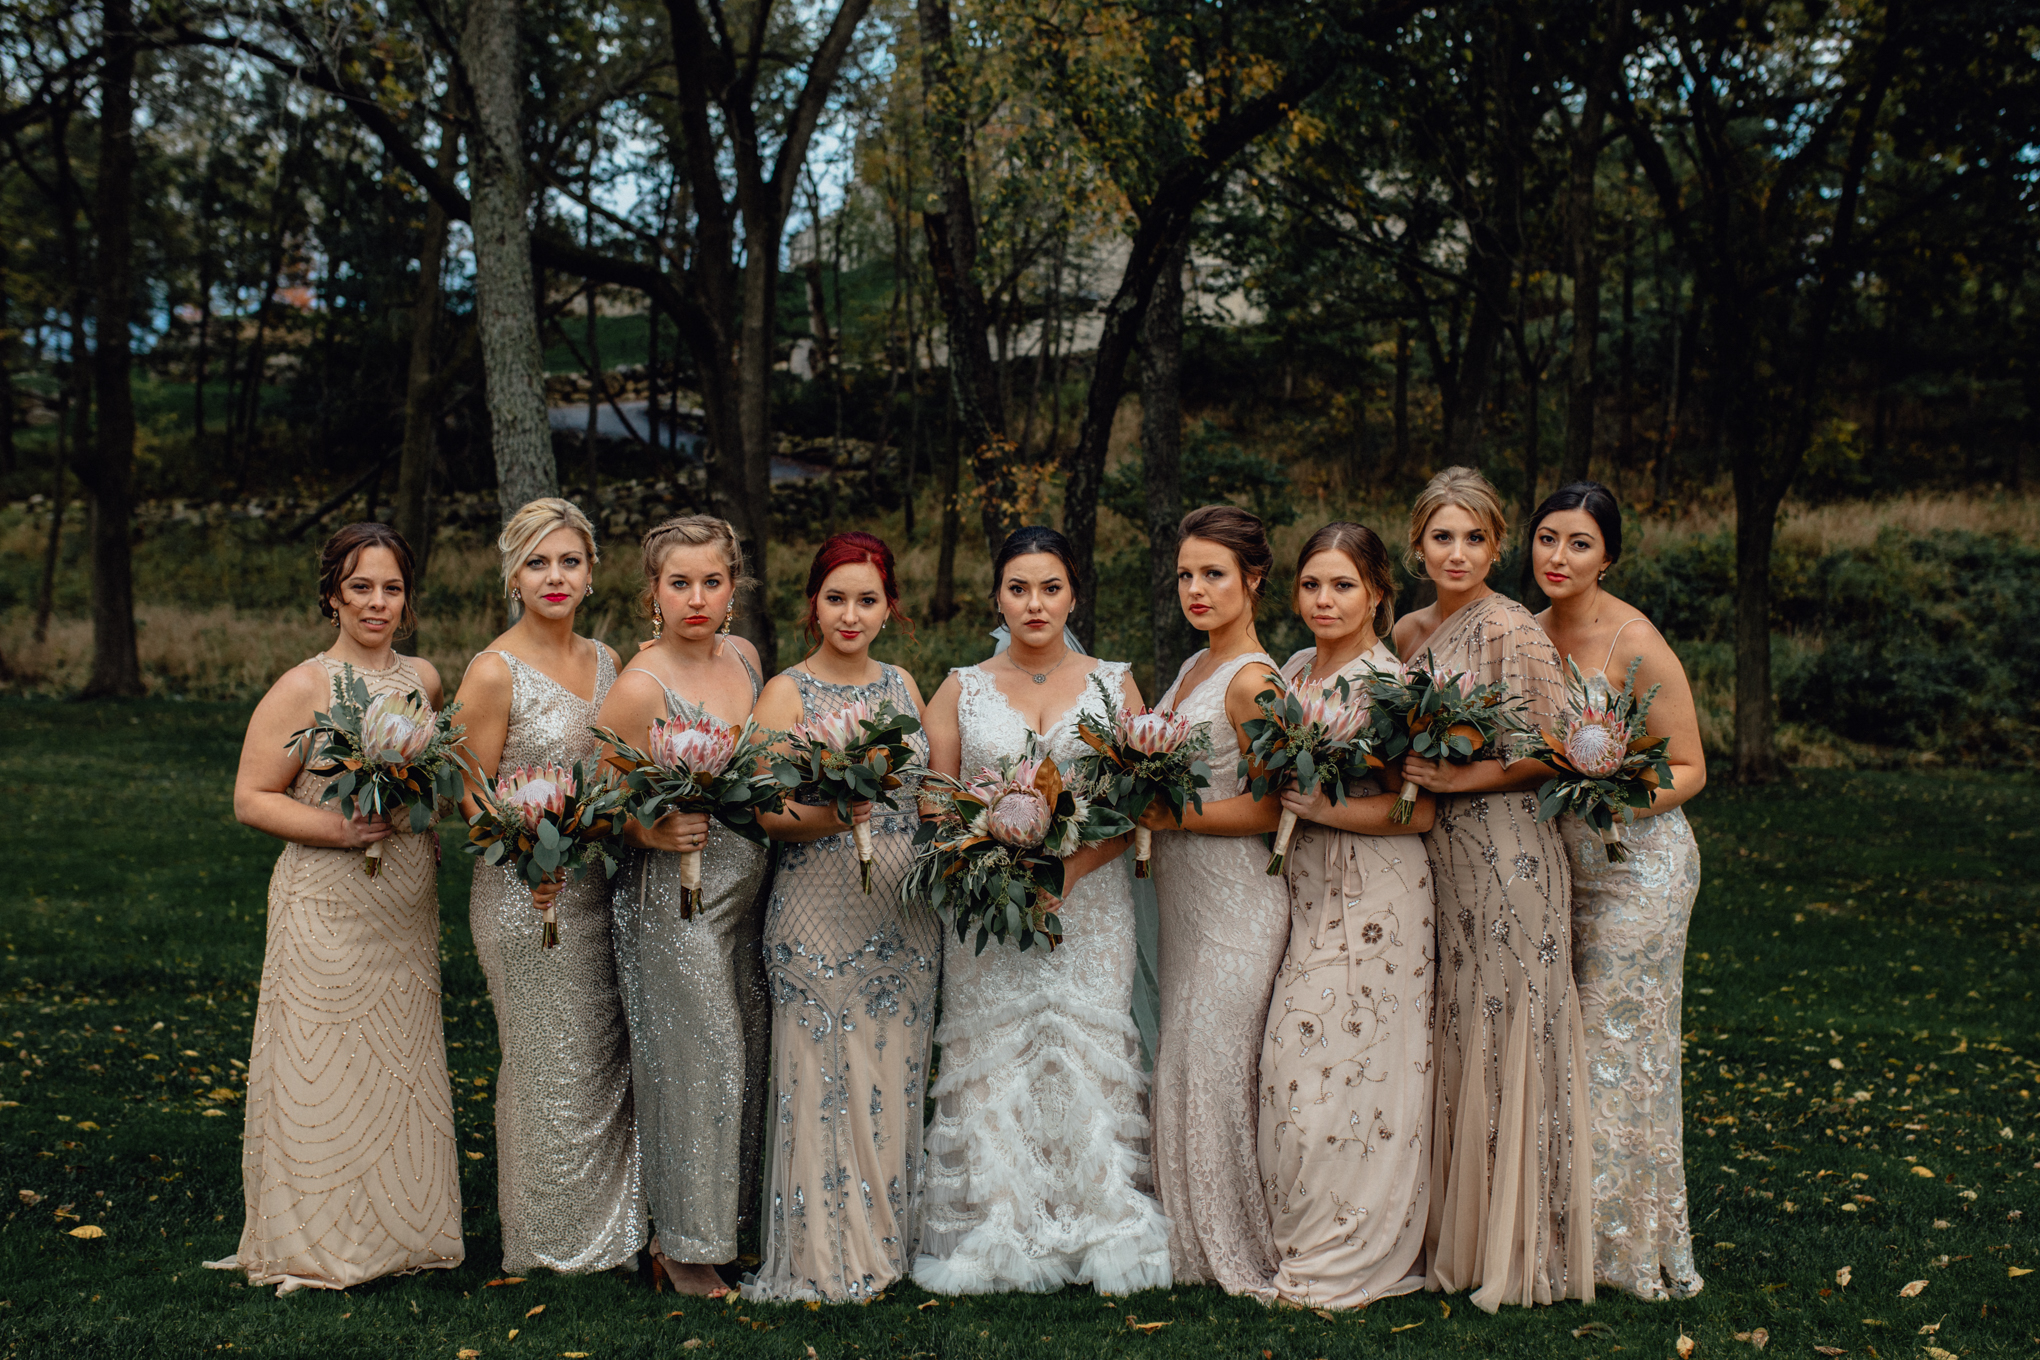 bridesmaids posing with bouquets in grass